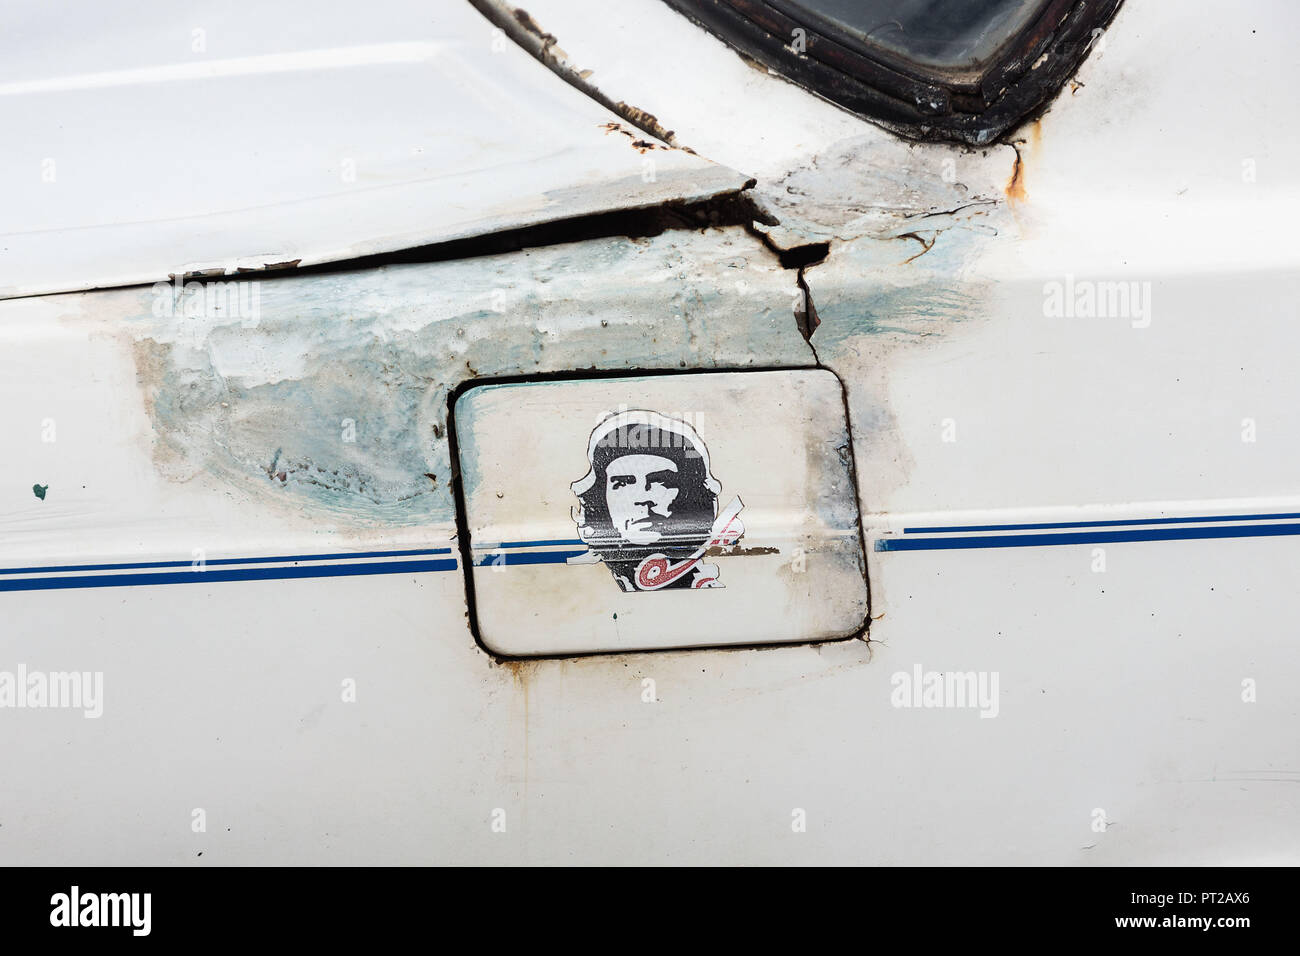 Cuba, rusty body with propaganda, Che Guevara - Stock Image